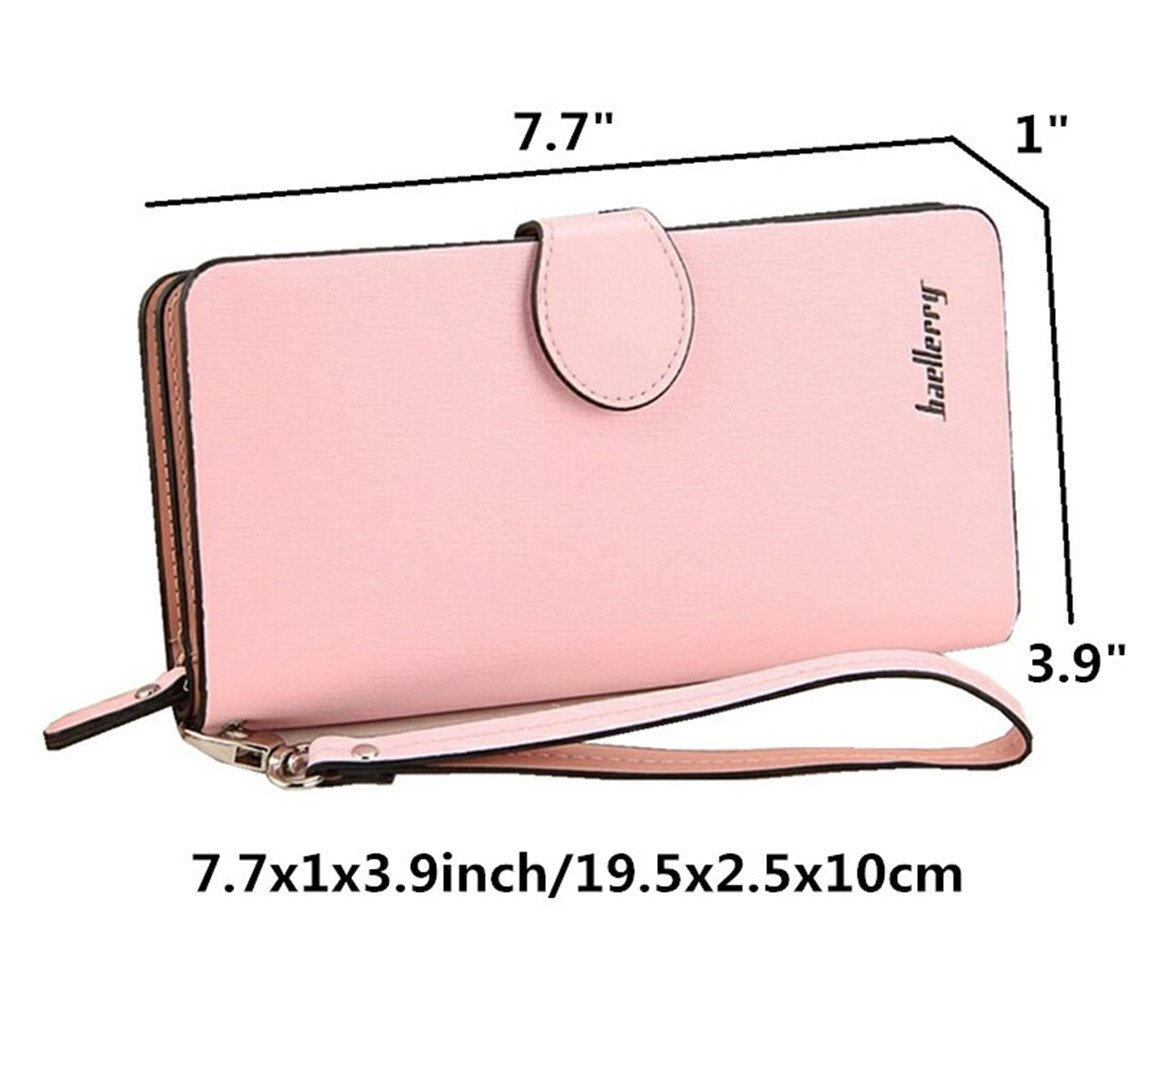 Leather Long Wallet, Zipper Wallet Multi Card Cellphone Holder Organizer Clutch Handbag for iPhone 8 plus Ladies Purse (Pink) by Coolstar (Image #2)